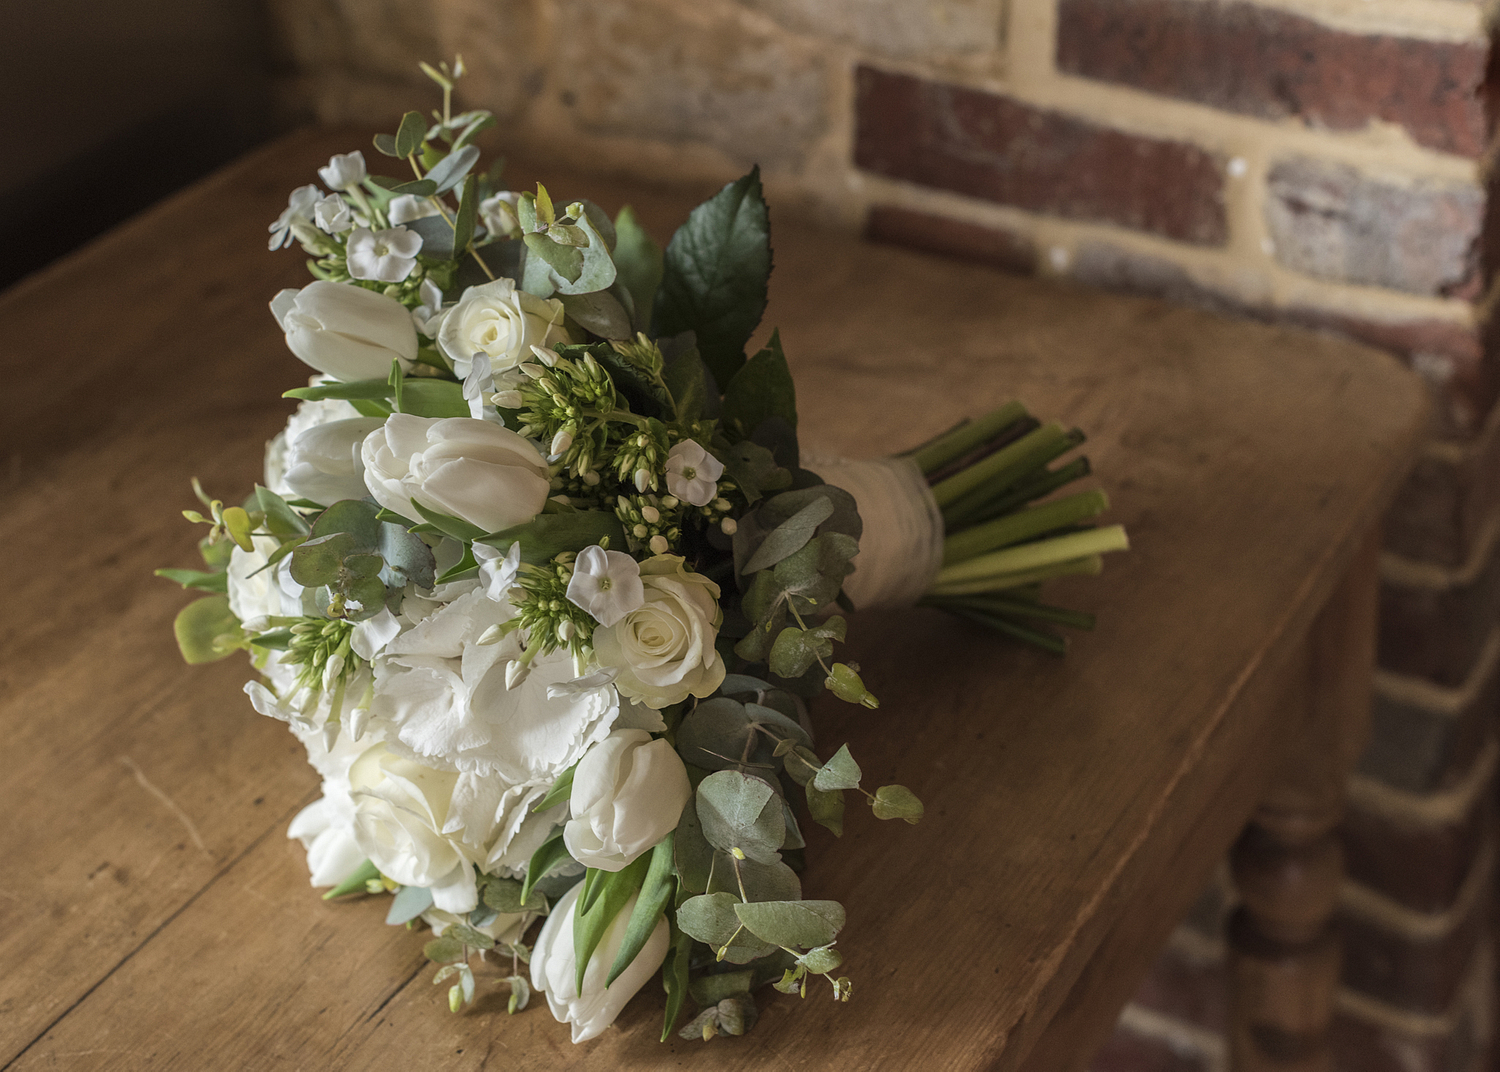 Wedding bouquet on the kitchen table, Surrey